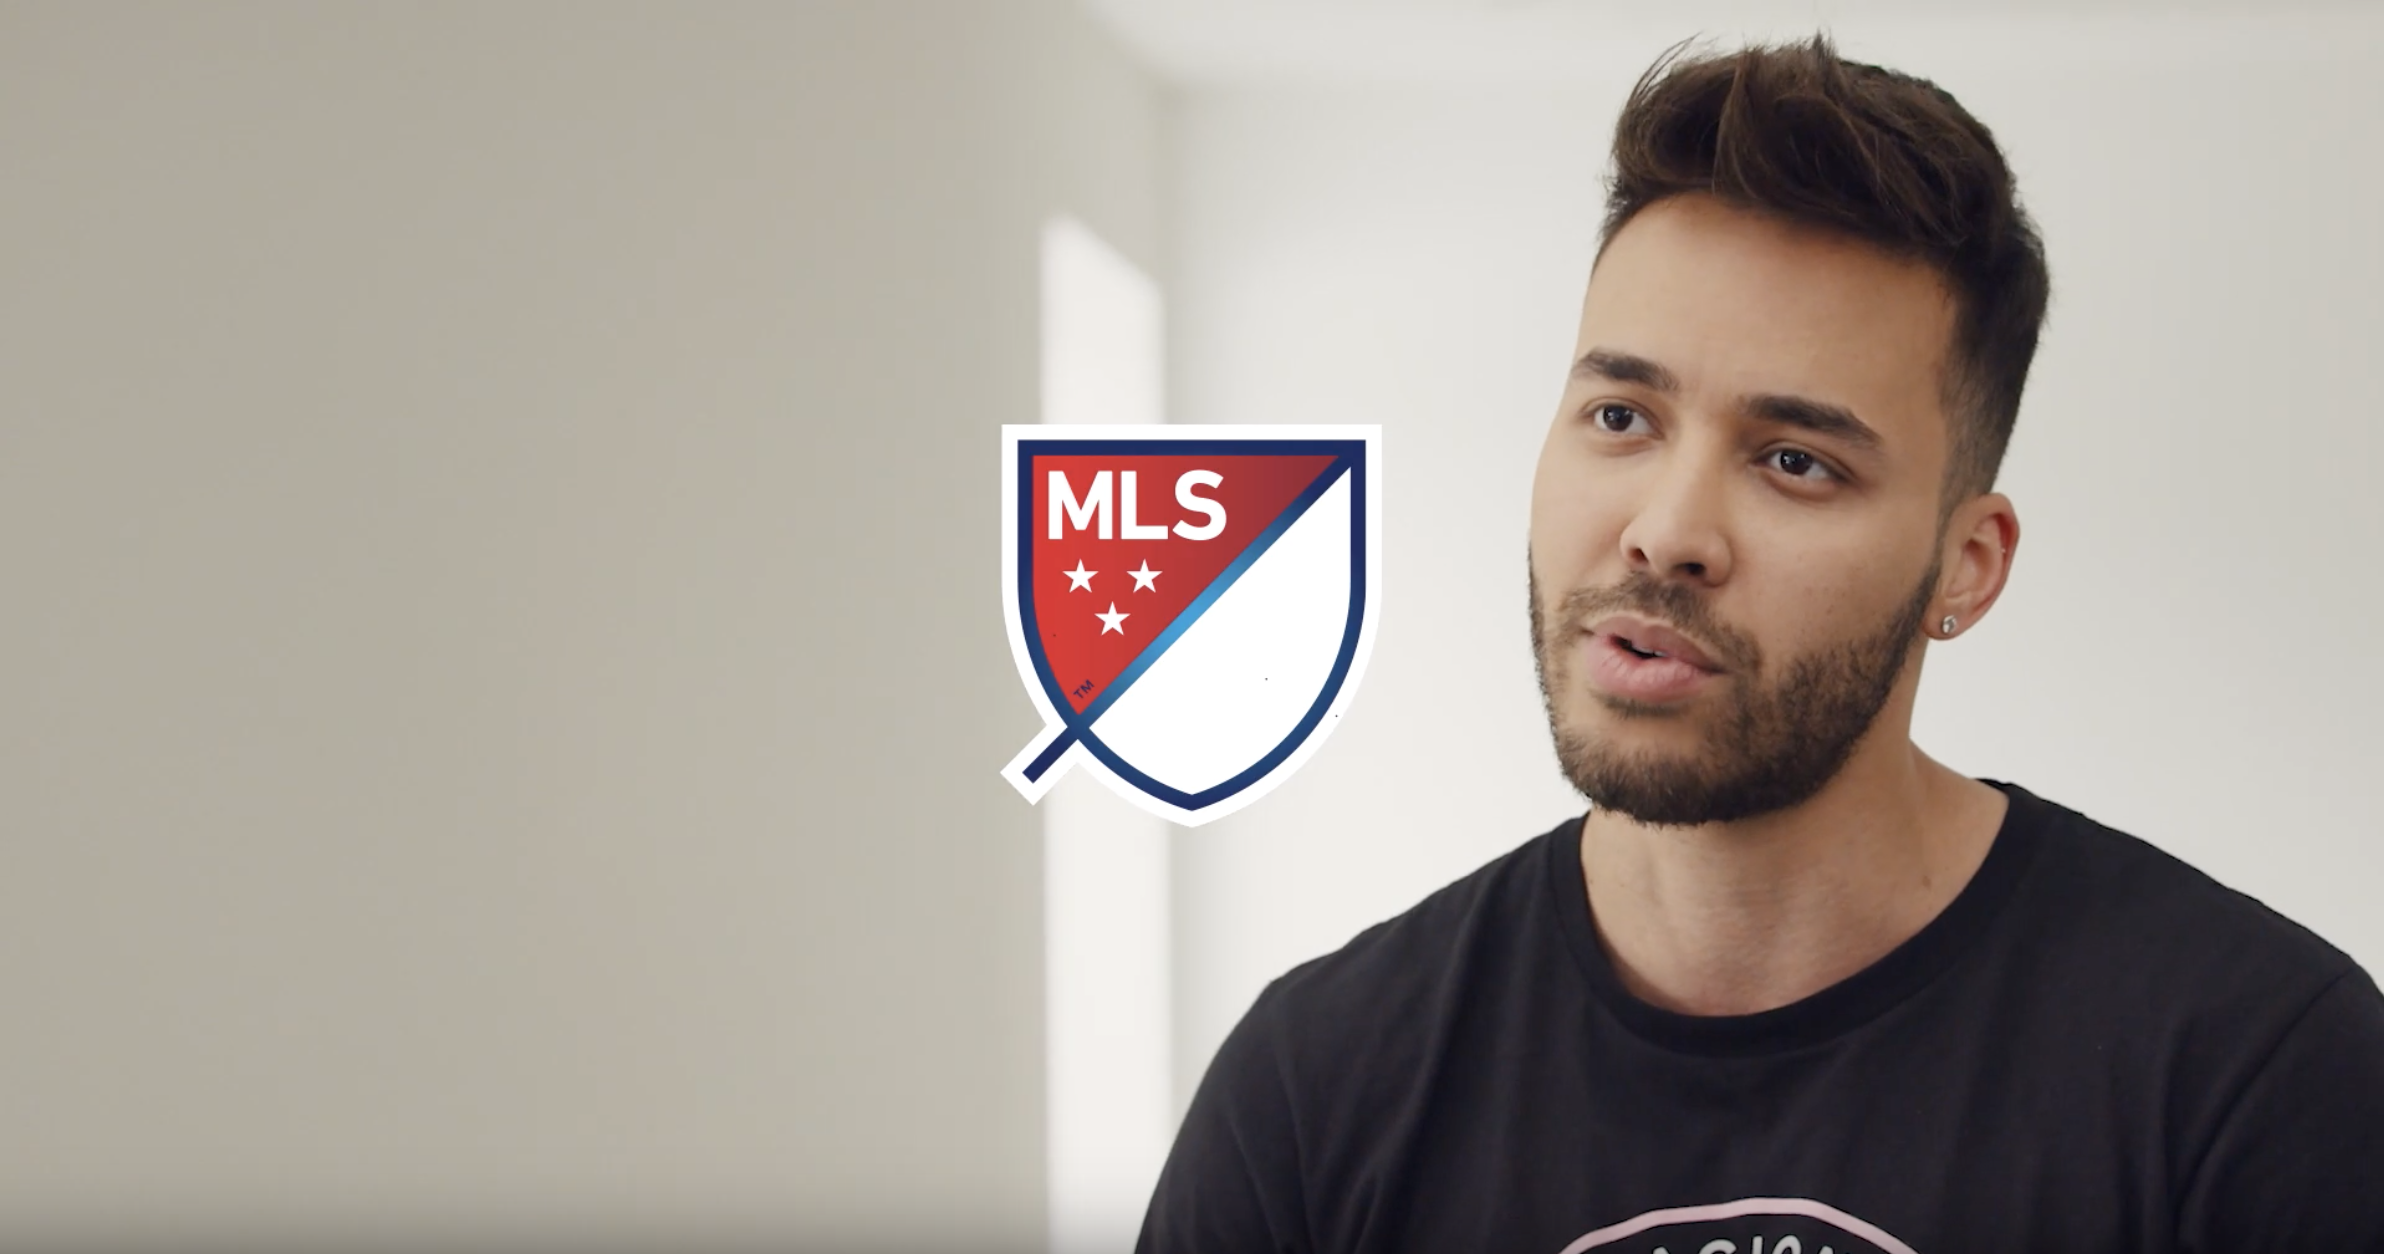 Behind the scenes with musicians and MLS fans Prince Royce, TOKiMONSTA